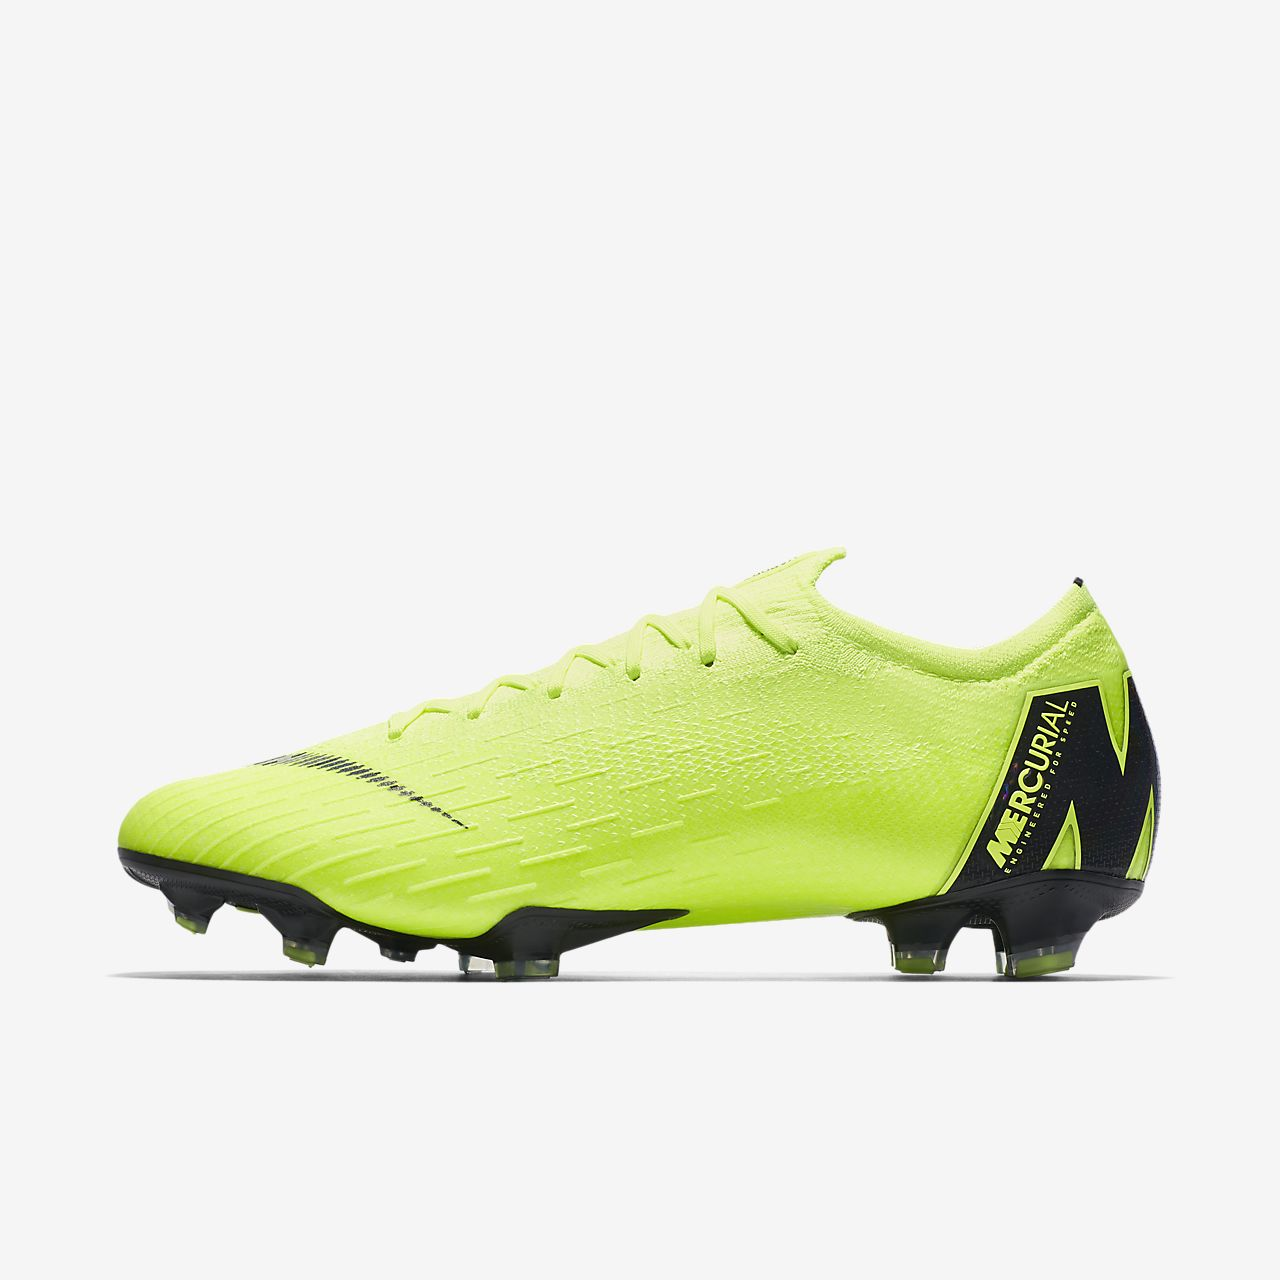 80f40a55e5f7 Nike Mercurial Vapor 360 Elite Firm-Ground Football Boot. Nike.com BE